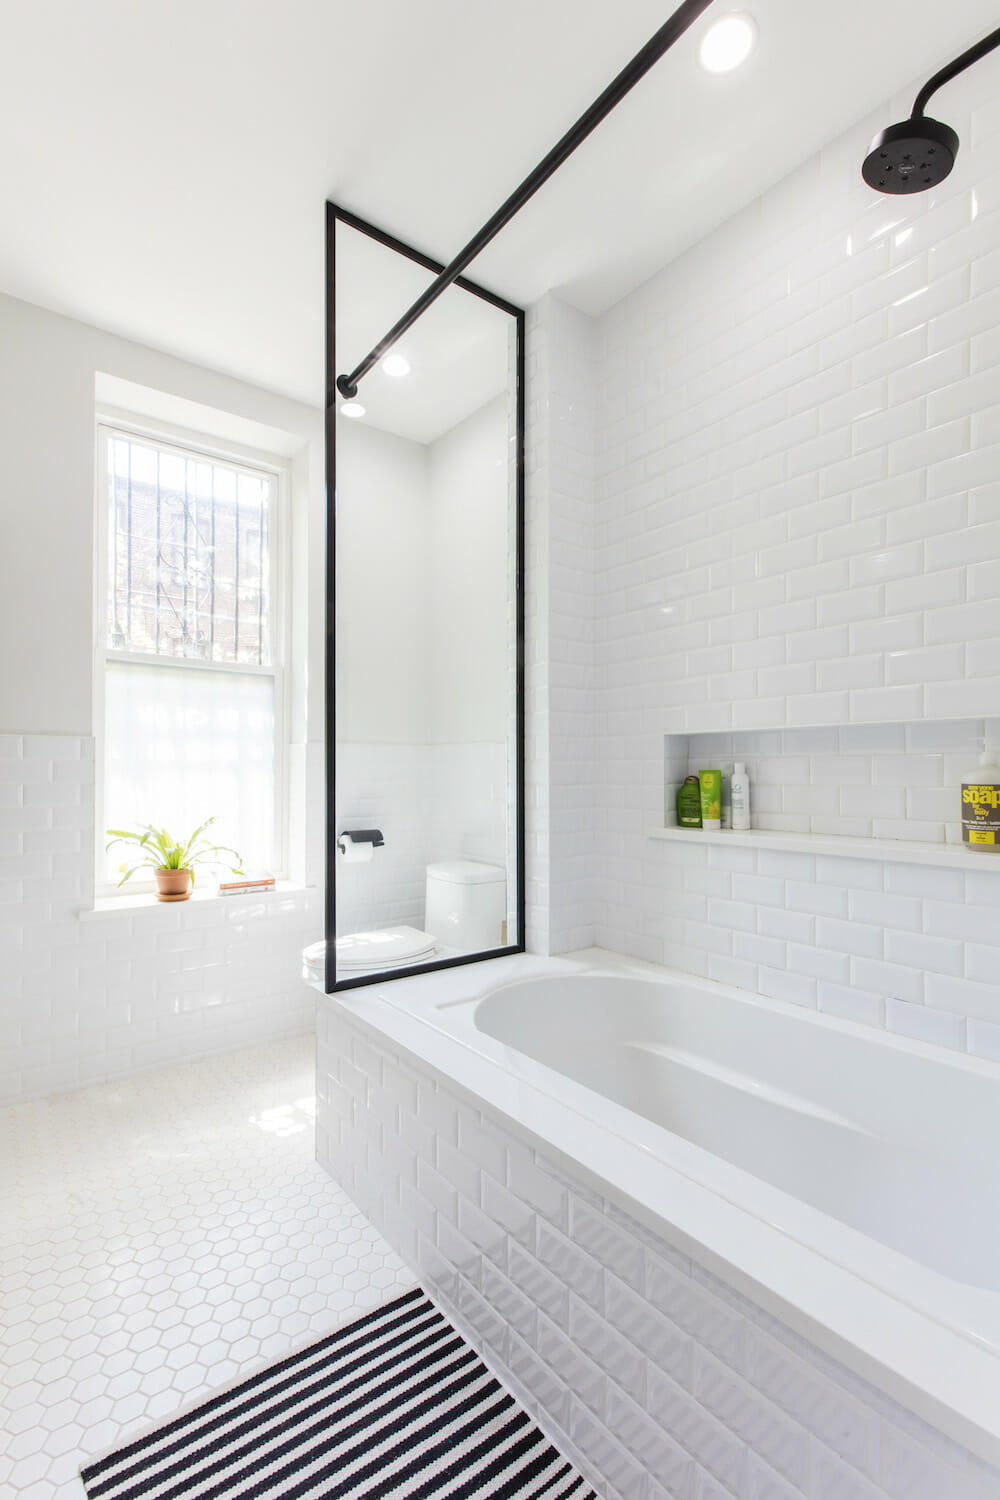 Image of a renovated bathroom with white subway tile and bathtub